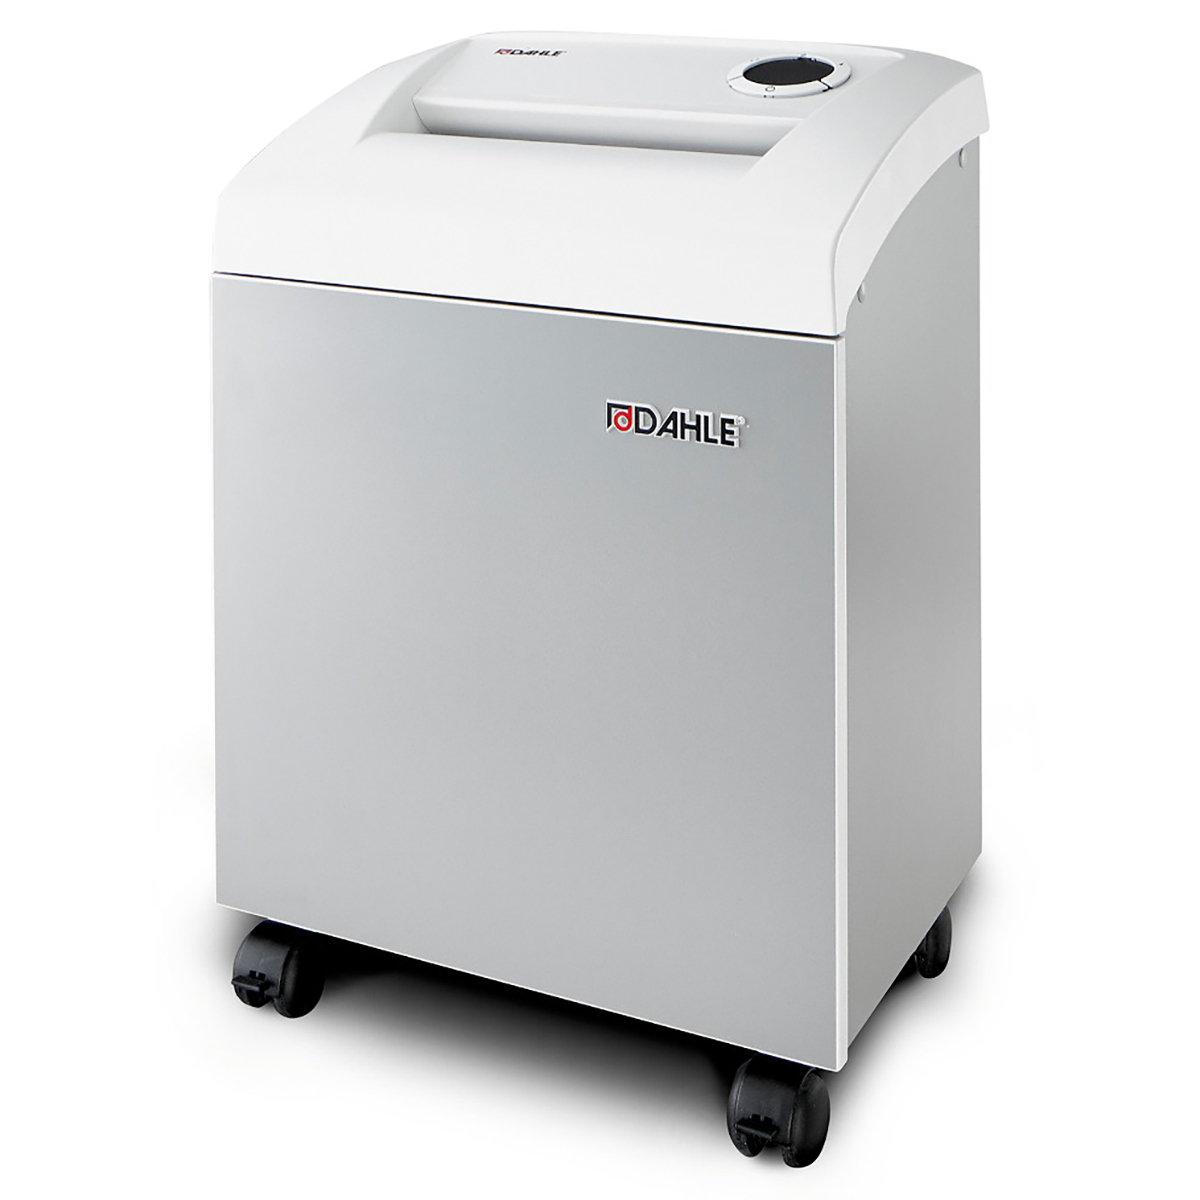 Dahle 310 Team Clean Tec Professional Cross cut Shredder